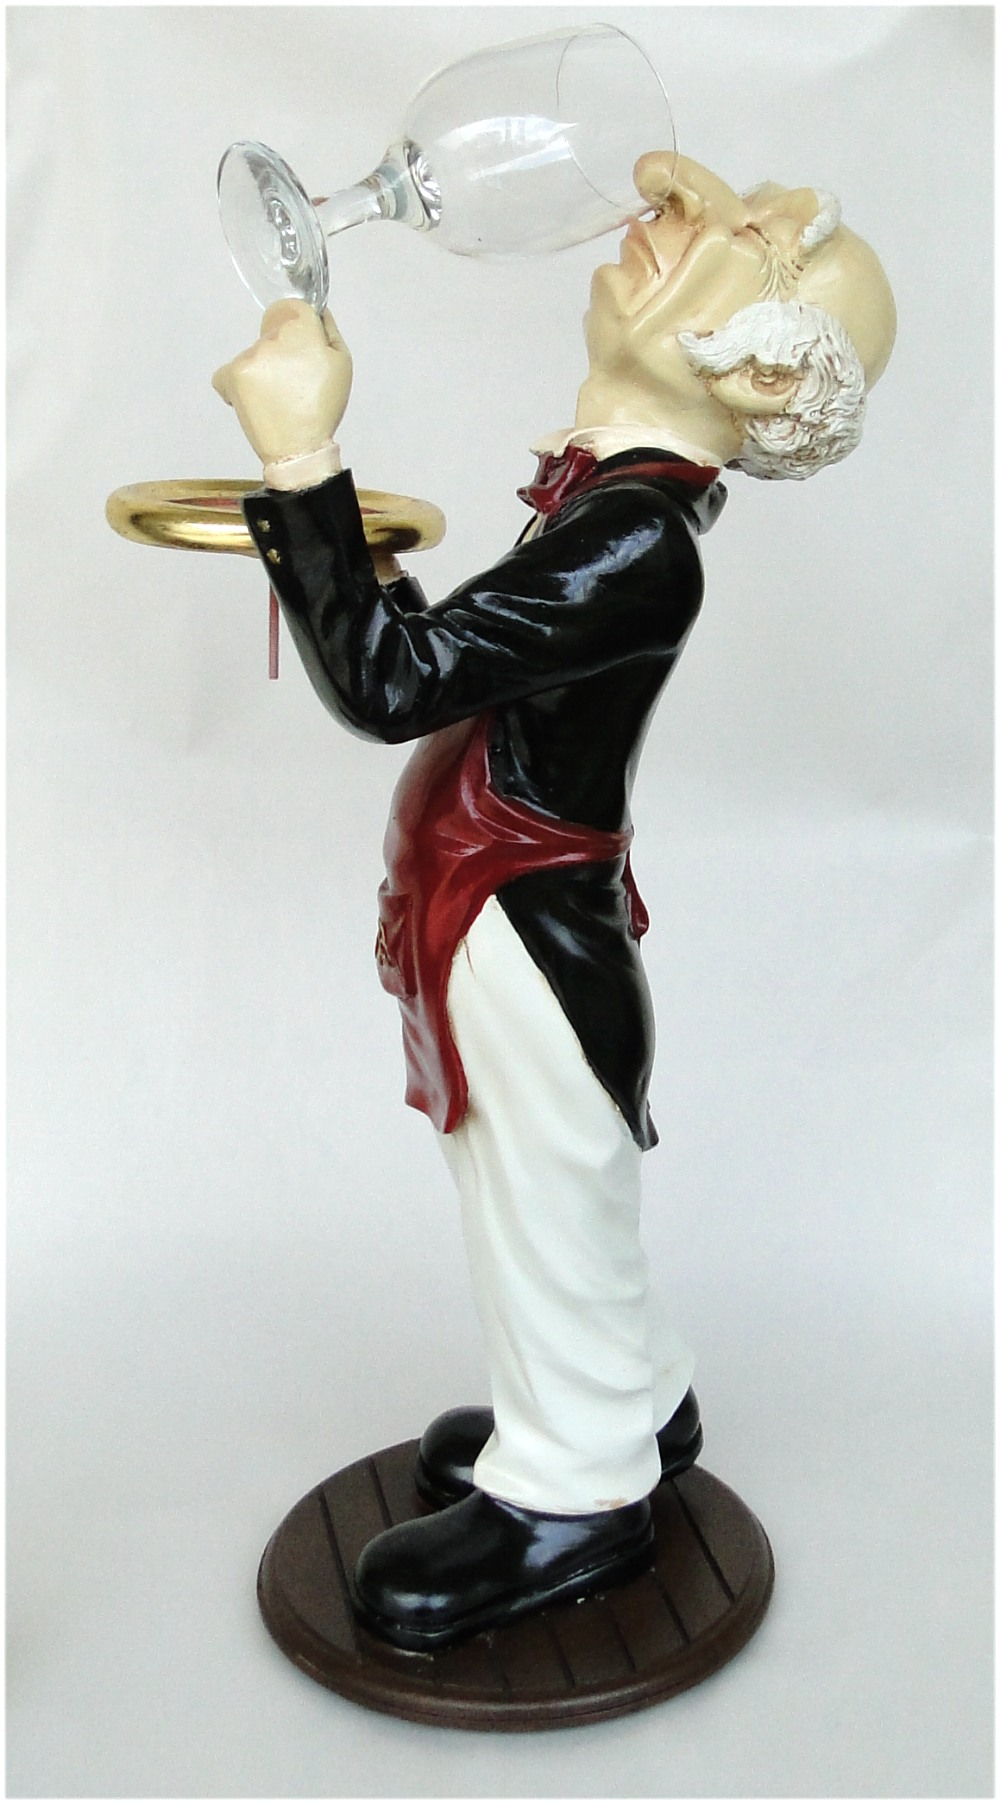 2 Tall Snobby Butler Statue Wine Waiter With Glass In